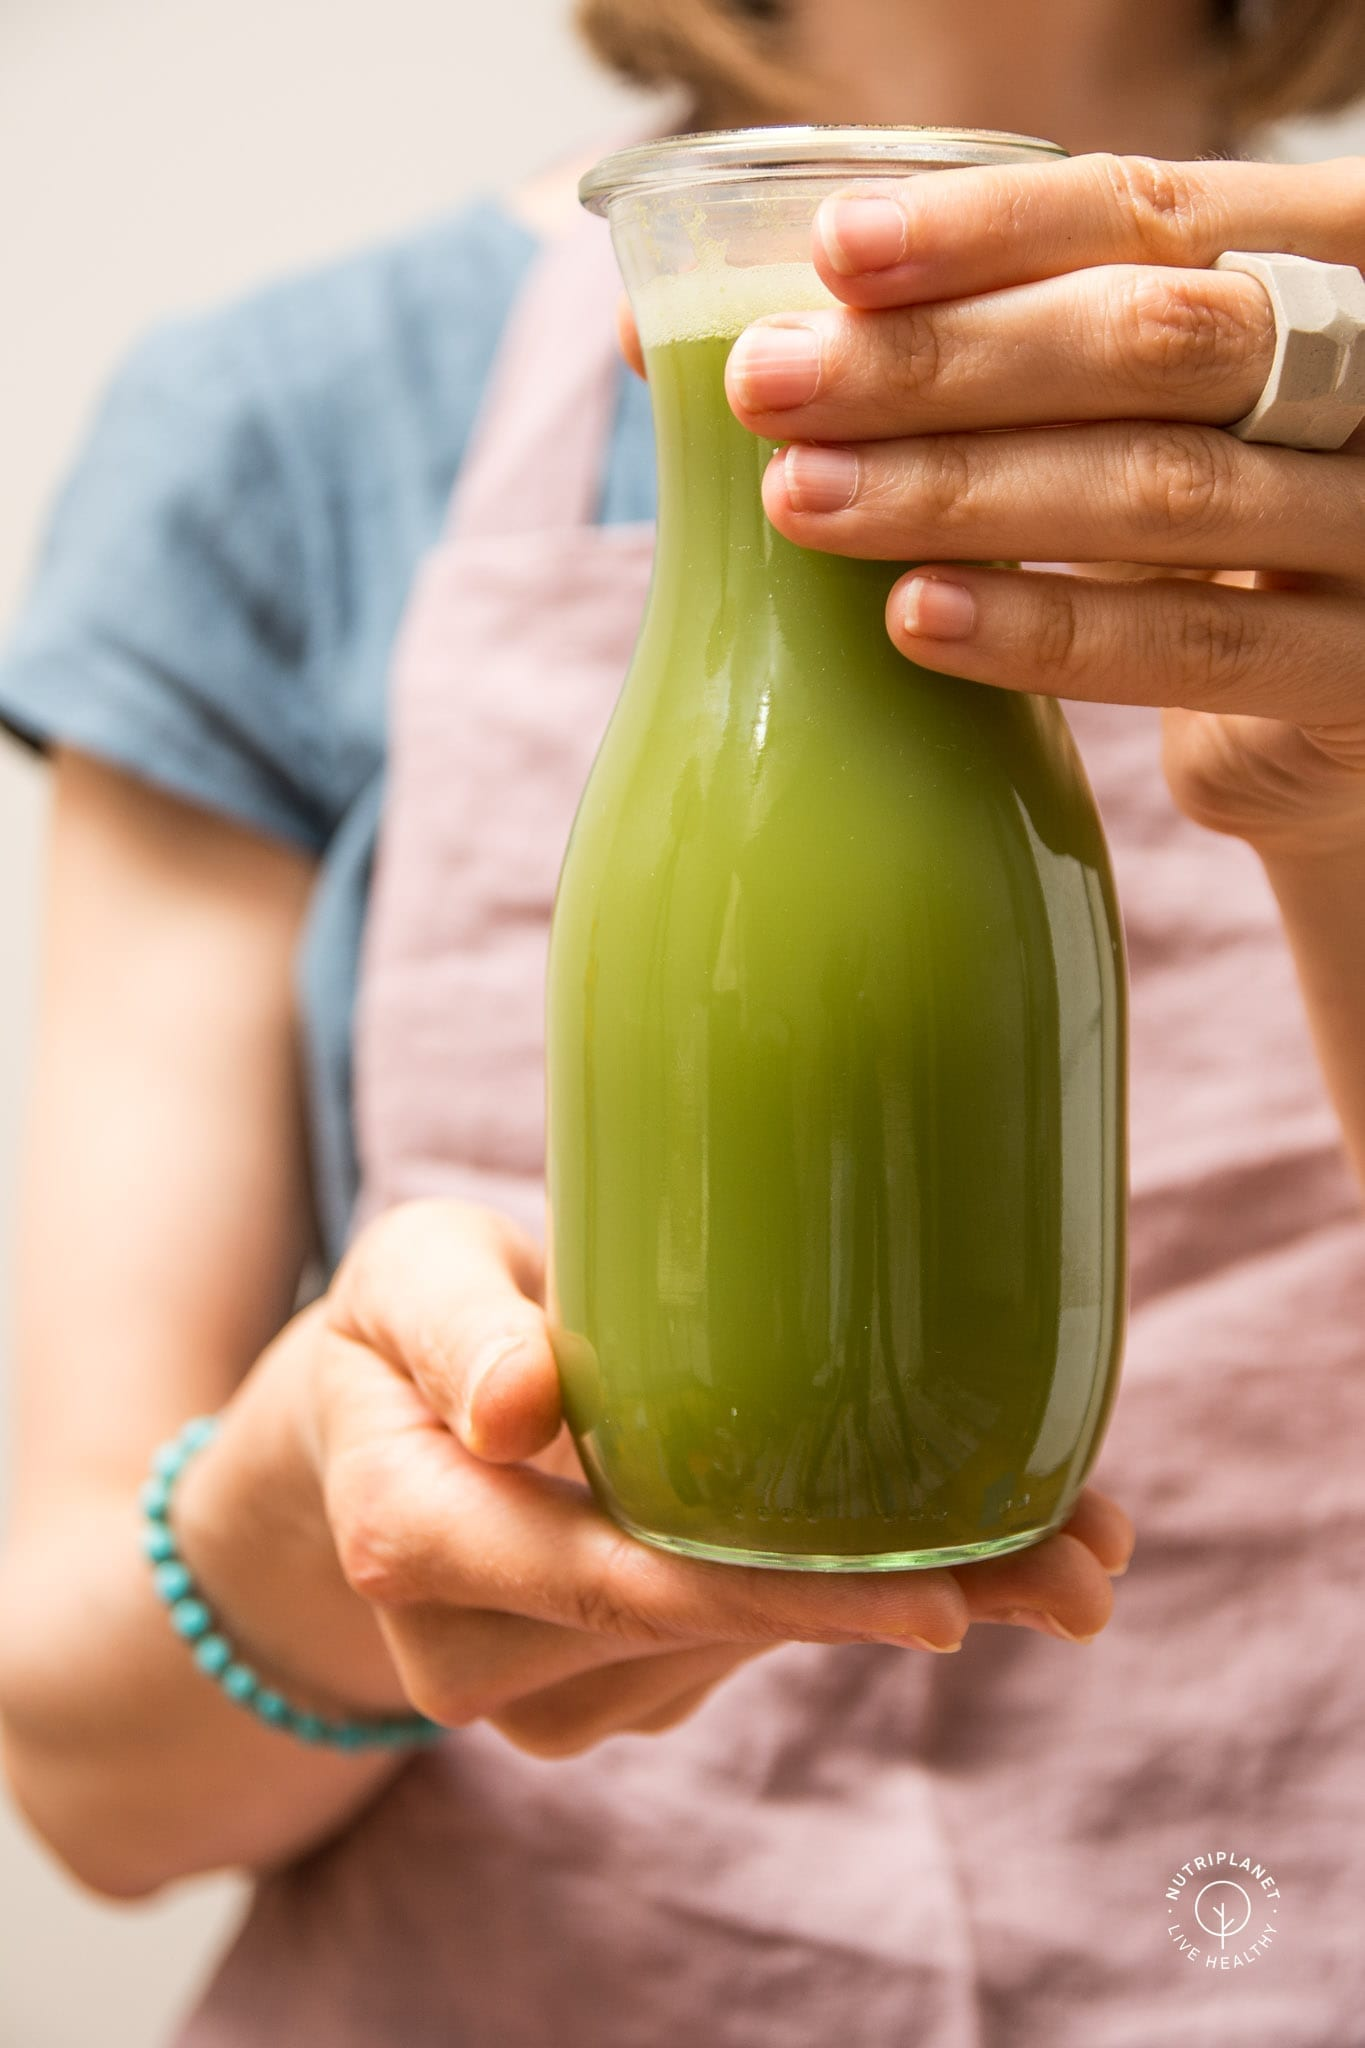 Celery juice benefits, my experience and the correct way to drink it.